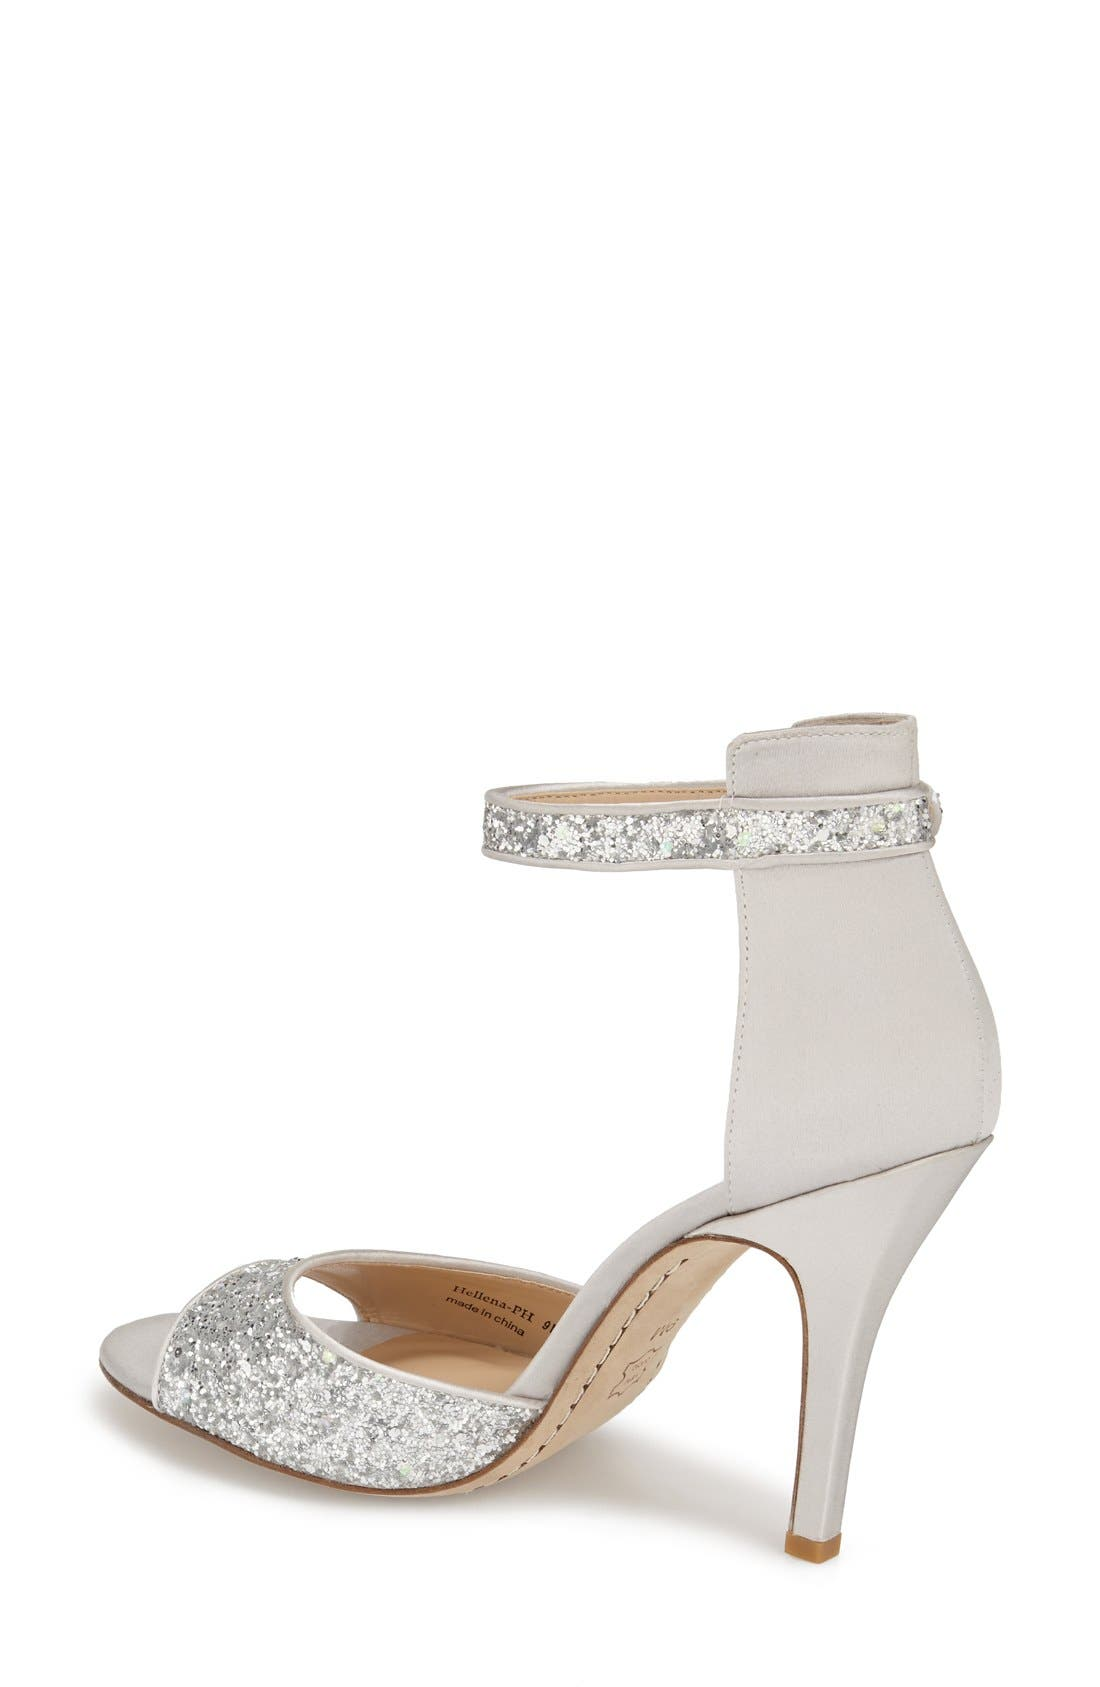 Alternate Image 2  - Kay Unger 'Phoebe Collection - Helena Glitter' Sandal (Women)